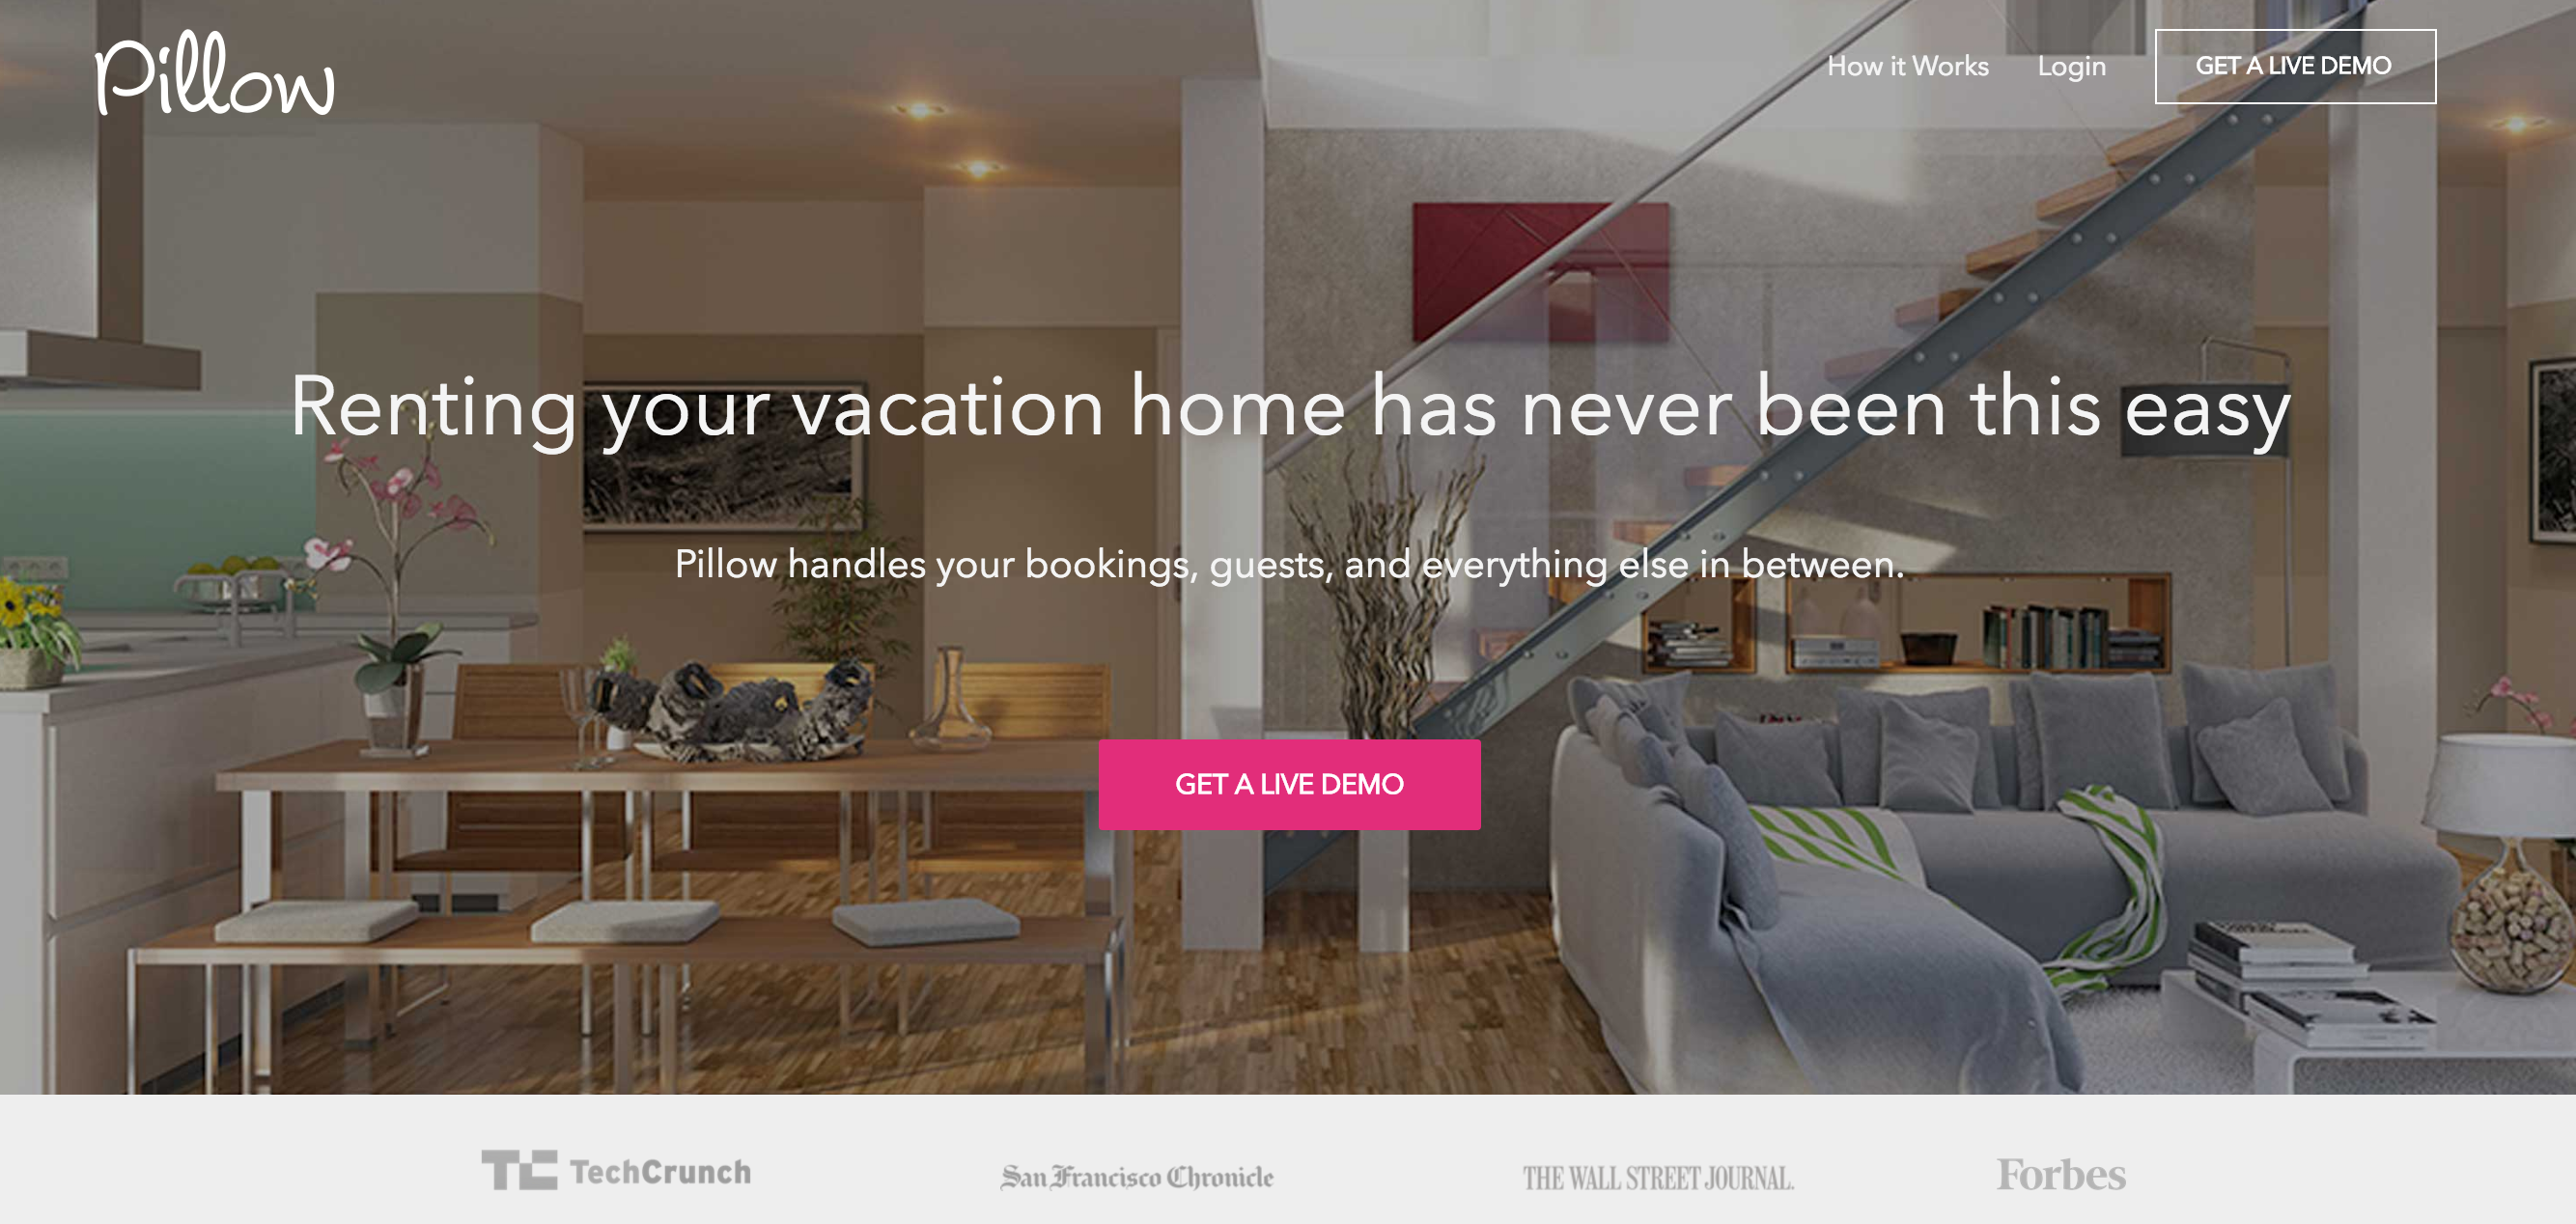 PIllow provide a complimentary service for AirBnb users, and handle key collection, cleaning etc.